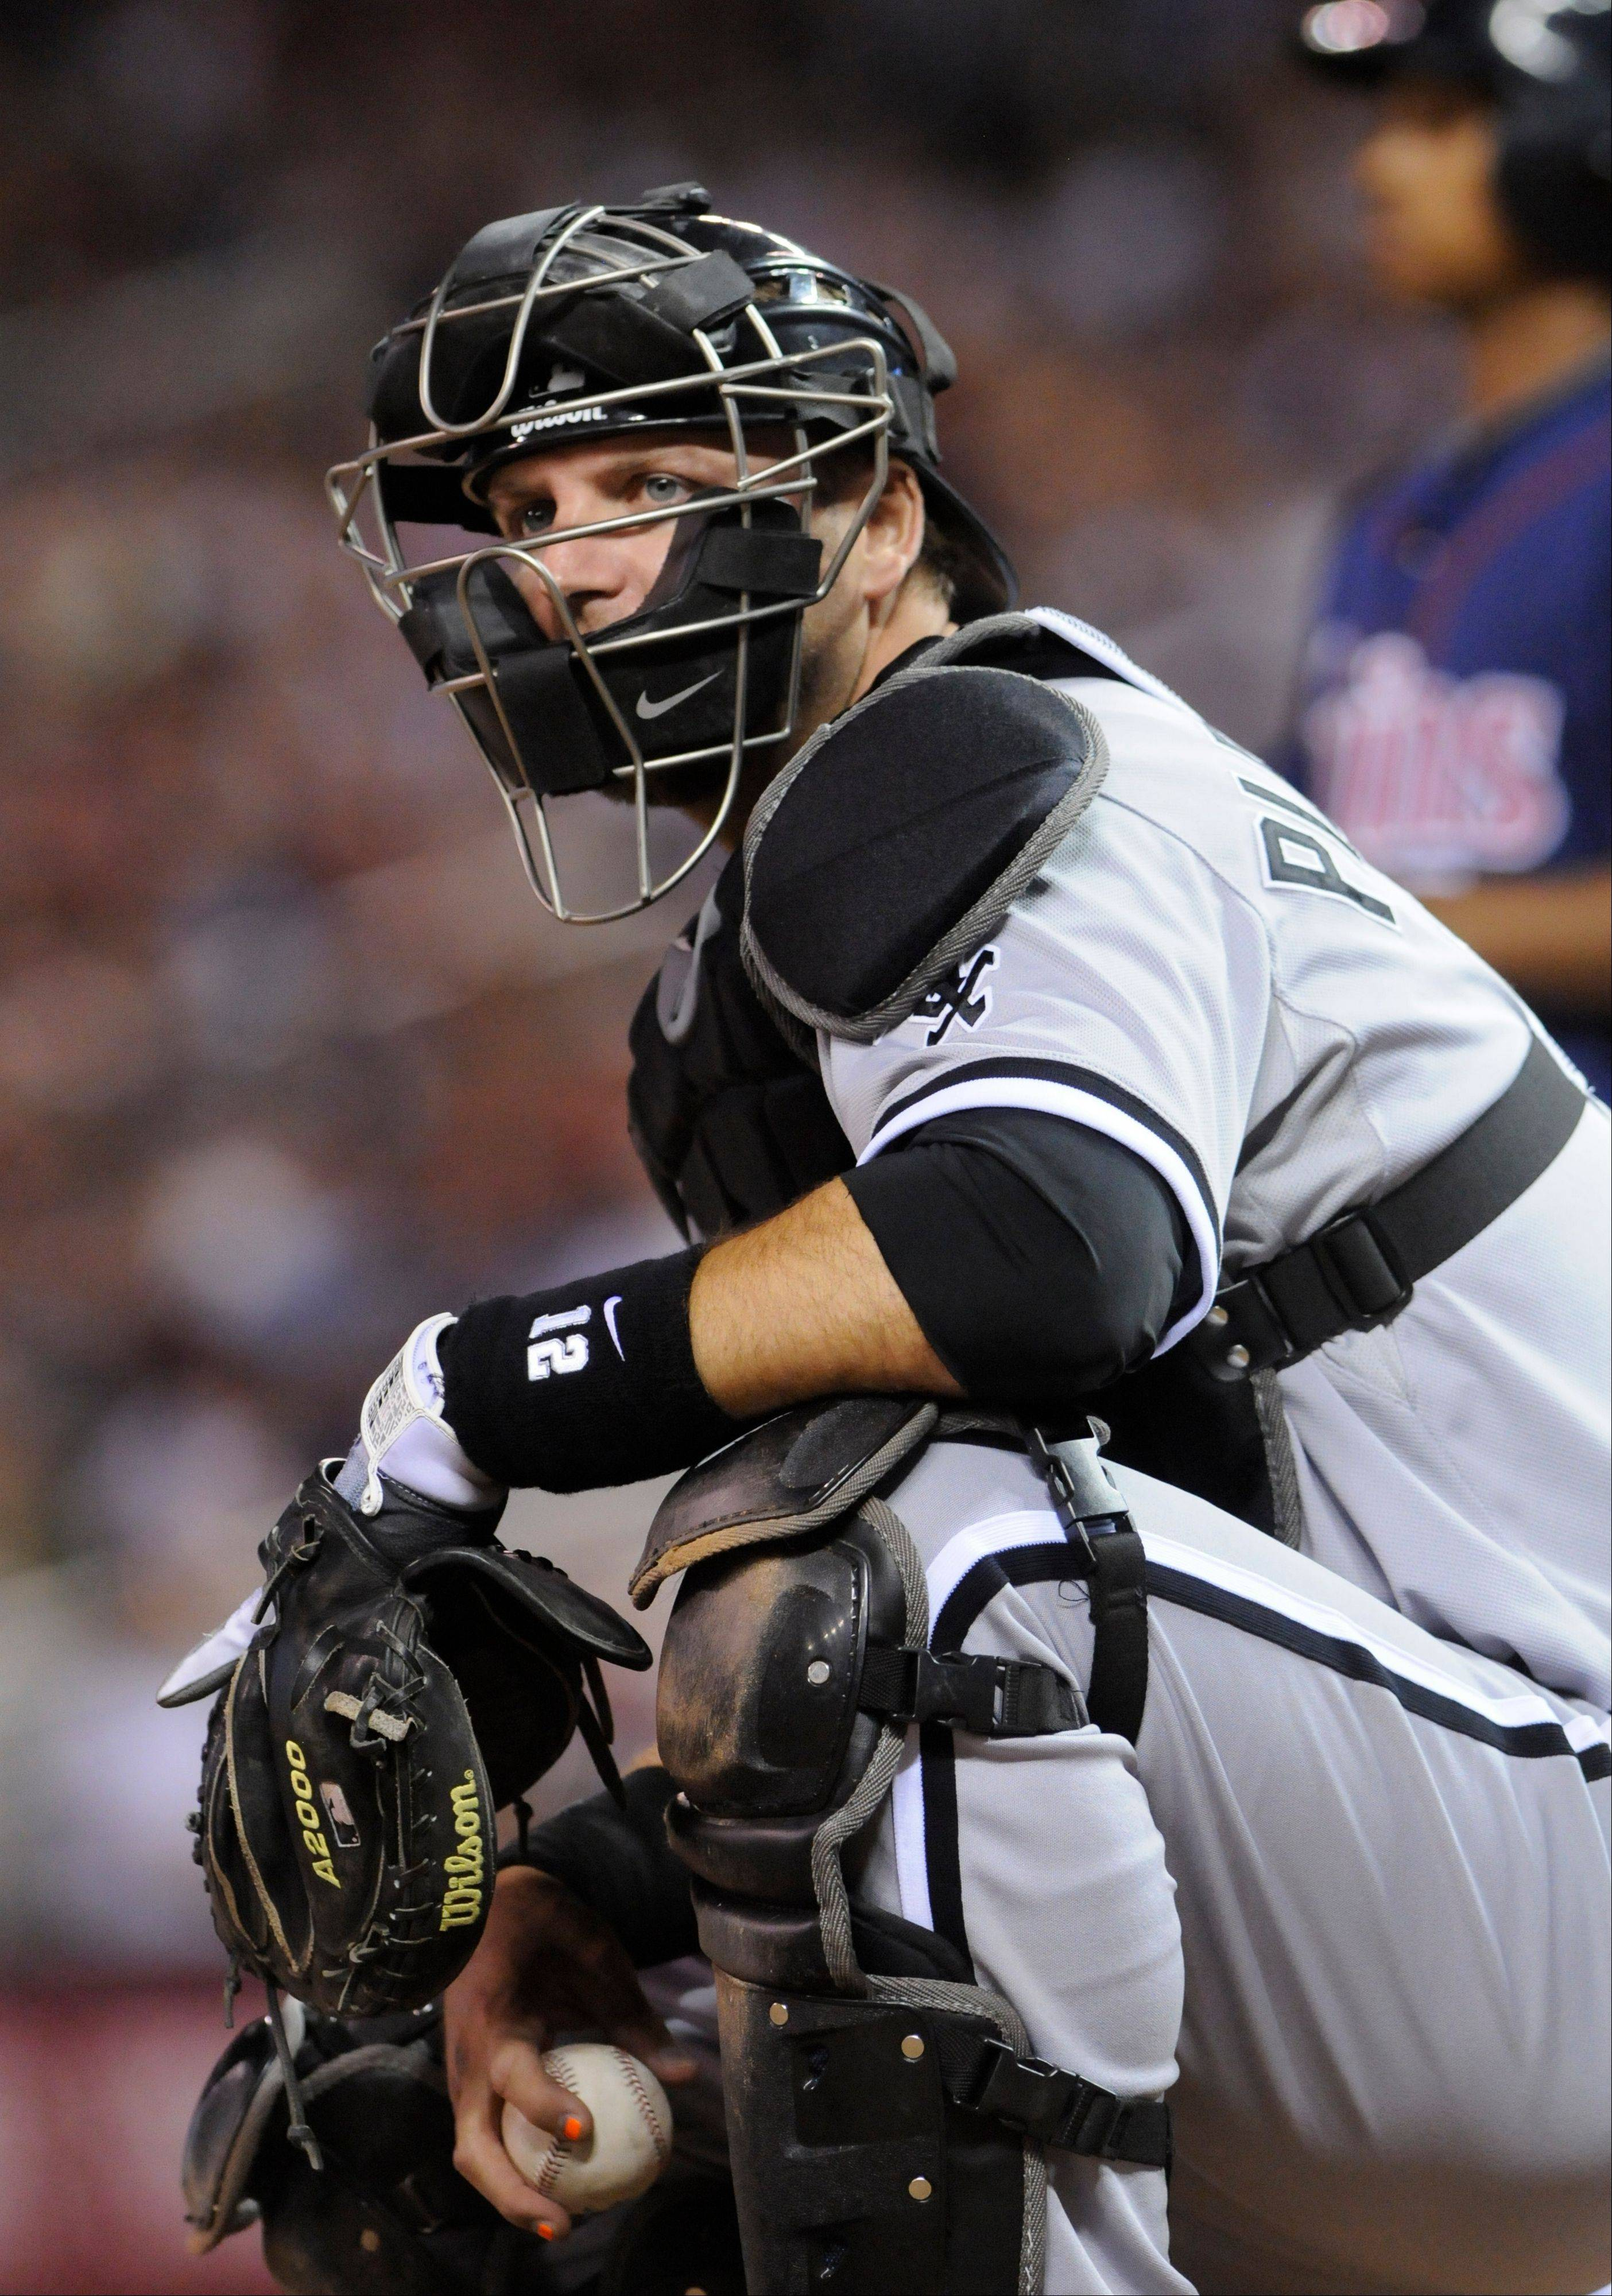 Former White Sox catcher A.J. Pierzynski will have a base salary of $7.5 million with the Texas Rangers next season. In addition to catching, he'll also share time as the designated hitter for the Rangers.